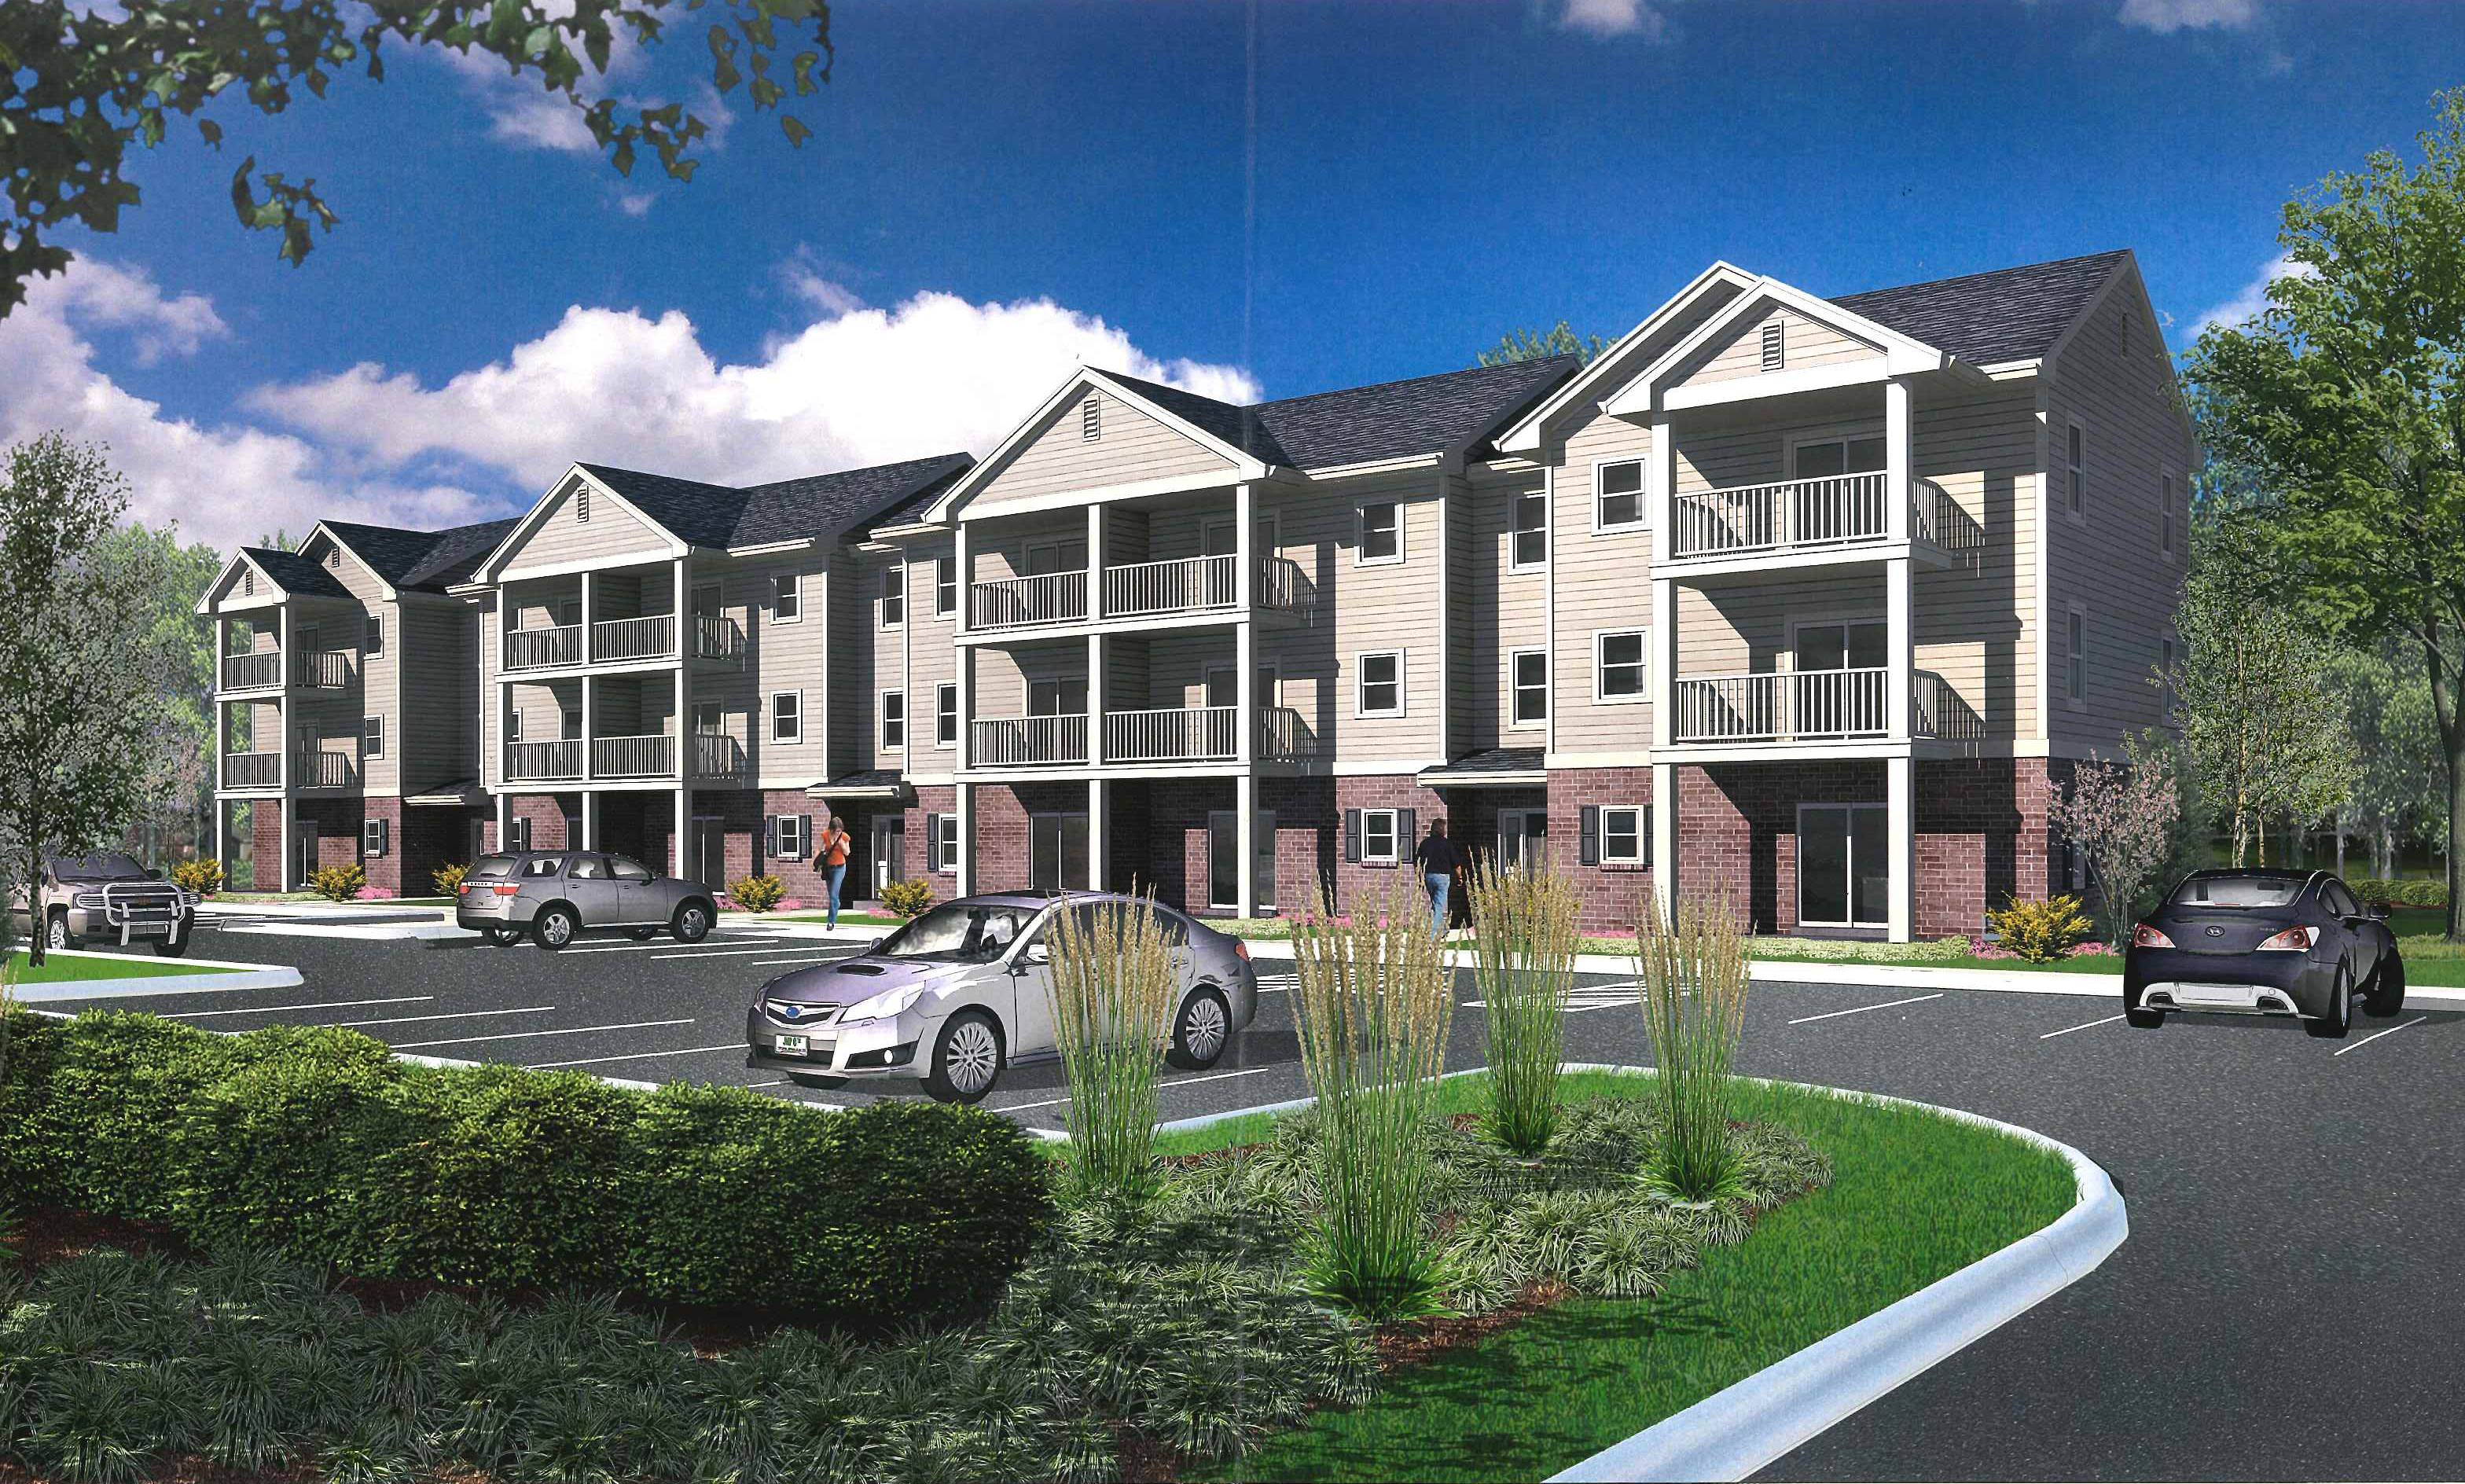 East Dundee is donating land to developers who intend to build two 18-unit apartment buildings at 811 E. Main St.